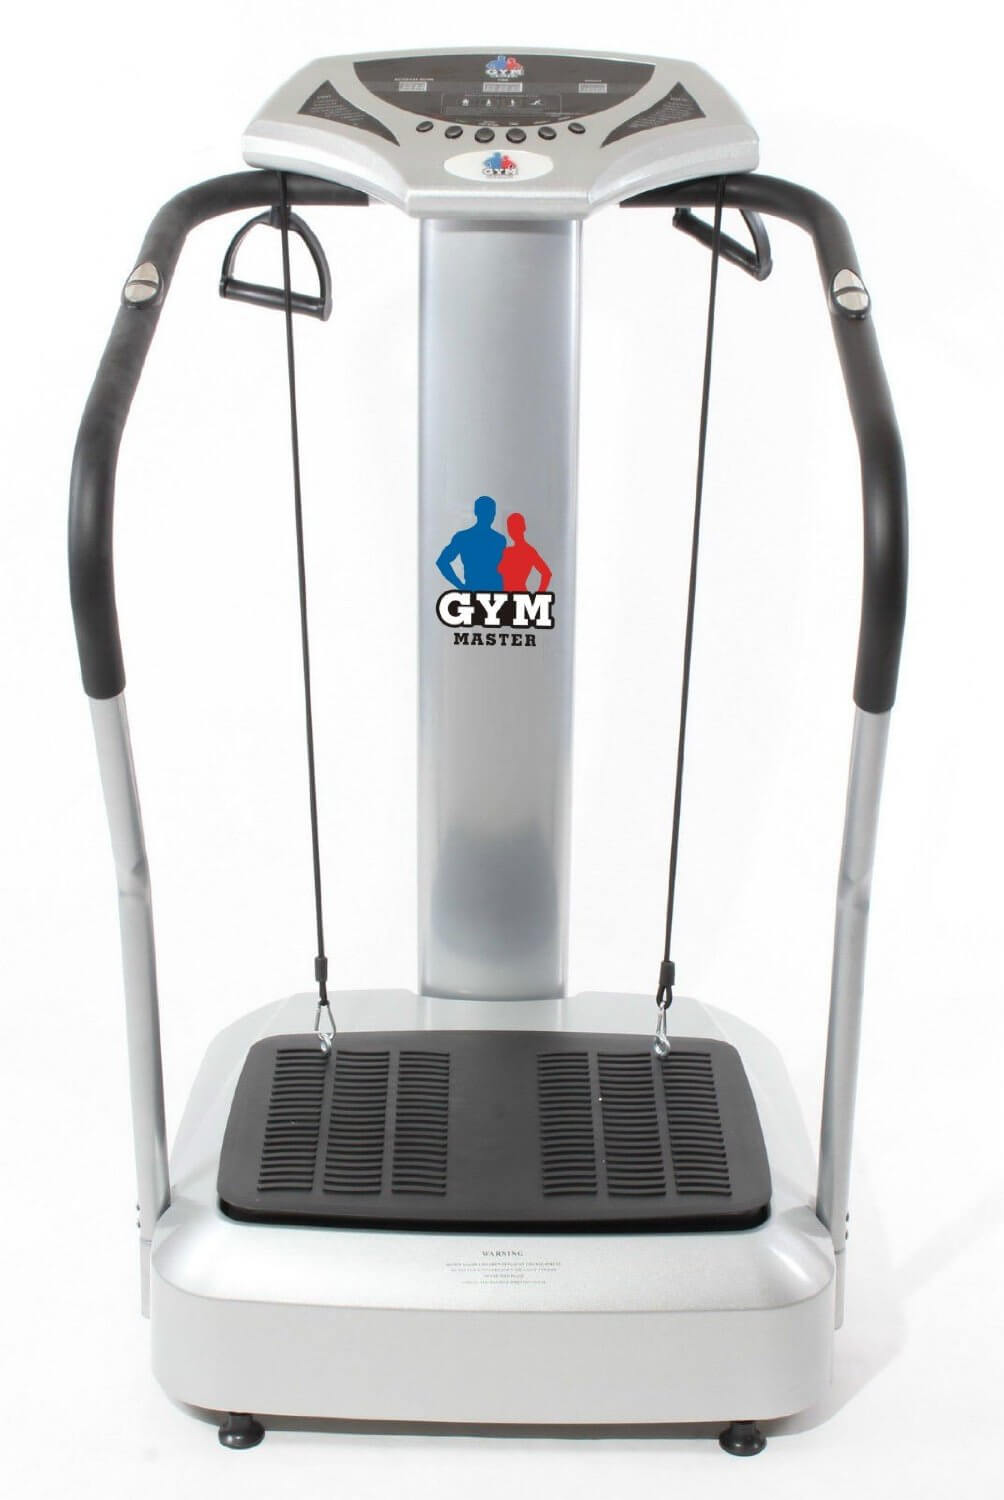 vibration exercise machine reviews australia